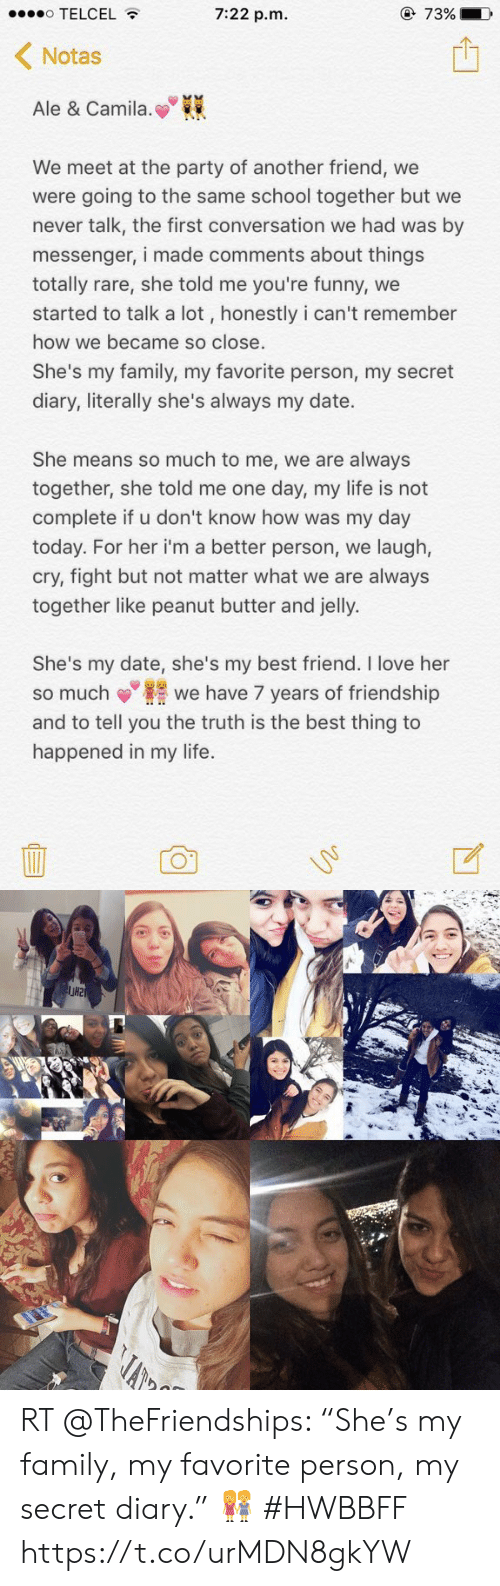 """Best Friend, Family, and Funny: TELCEL  7:22 p.m  @ 73%■0,  Notas  Ale & Camila.  We meet at the party of another friend, we  were going to the same school together but we  never talk, the first conversation we had was by  messenger, i made comments about things  totally rare, she told me you're funny, we  started to talk a lot, honestly i can't remember  how we became so close  She's my family, my favorite person, my secret  diary, literally she's always my date.  She means so much to me, we are always  together, she told me one day, my life is not  complete if u don't know how was my day  today. For her i'm a better person, we laugh,  cry, fight but not matter what we are always  together like peanut butter and jelly.  She's my date, she's my best friend. I love her  so muchwe have 7 years of friendship  and to tell you the truth is the best thing to  happened in my life. RT @TheFriendships: """"She's my family, my favorite person, my secret diary."""" 👭 #HWBBFF https://t.co/urMDN8gkYW"""